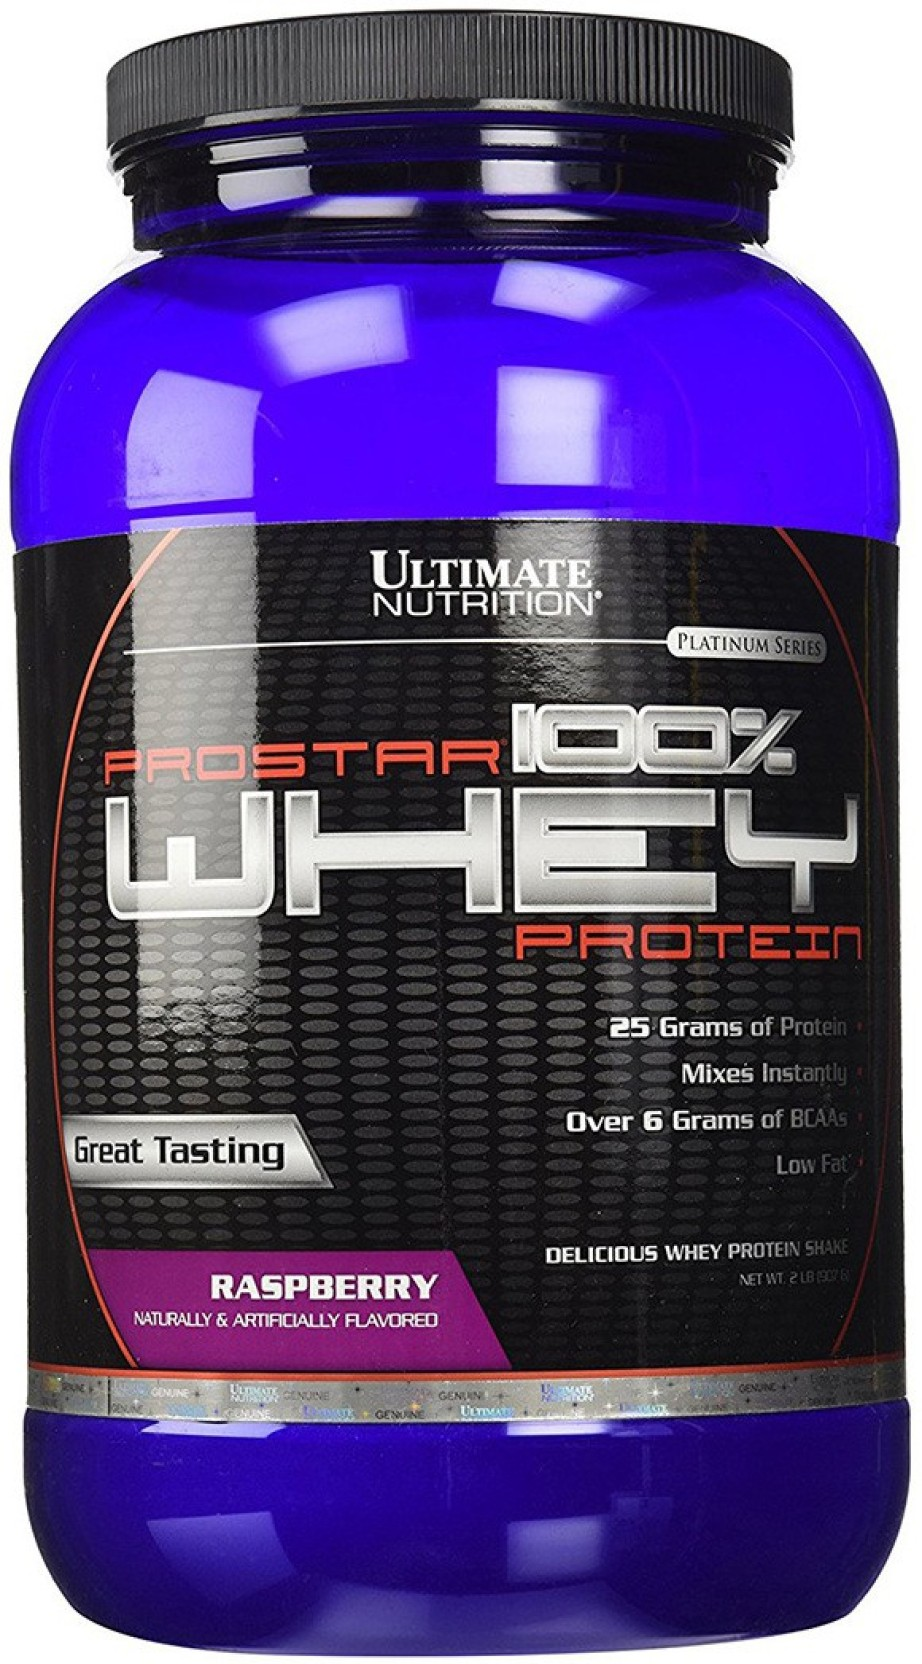 Ultimate Nutrition Prostar 100 Whey Protein Price In India Buy 10 Lb Home